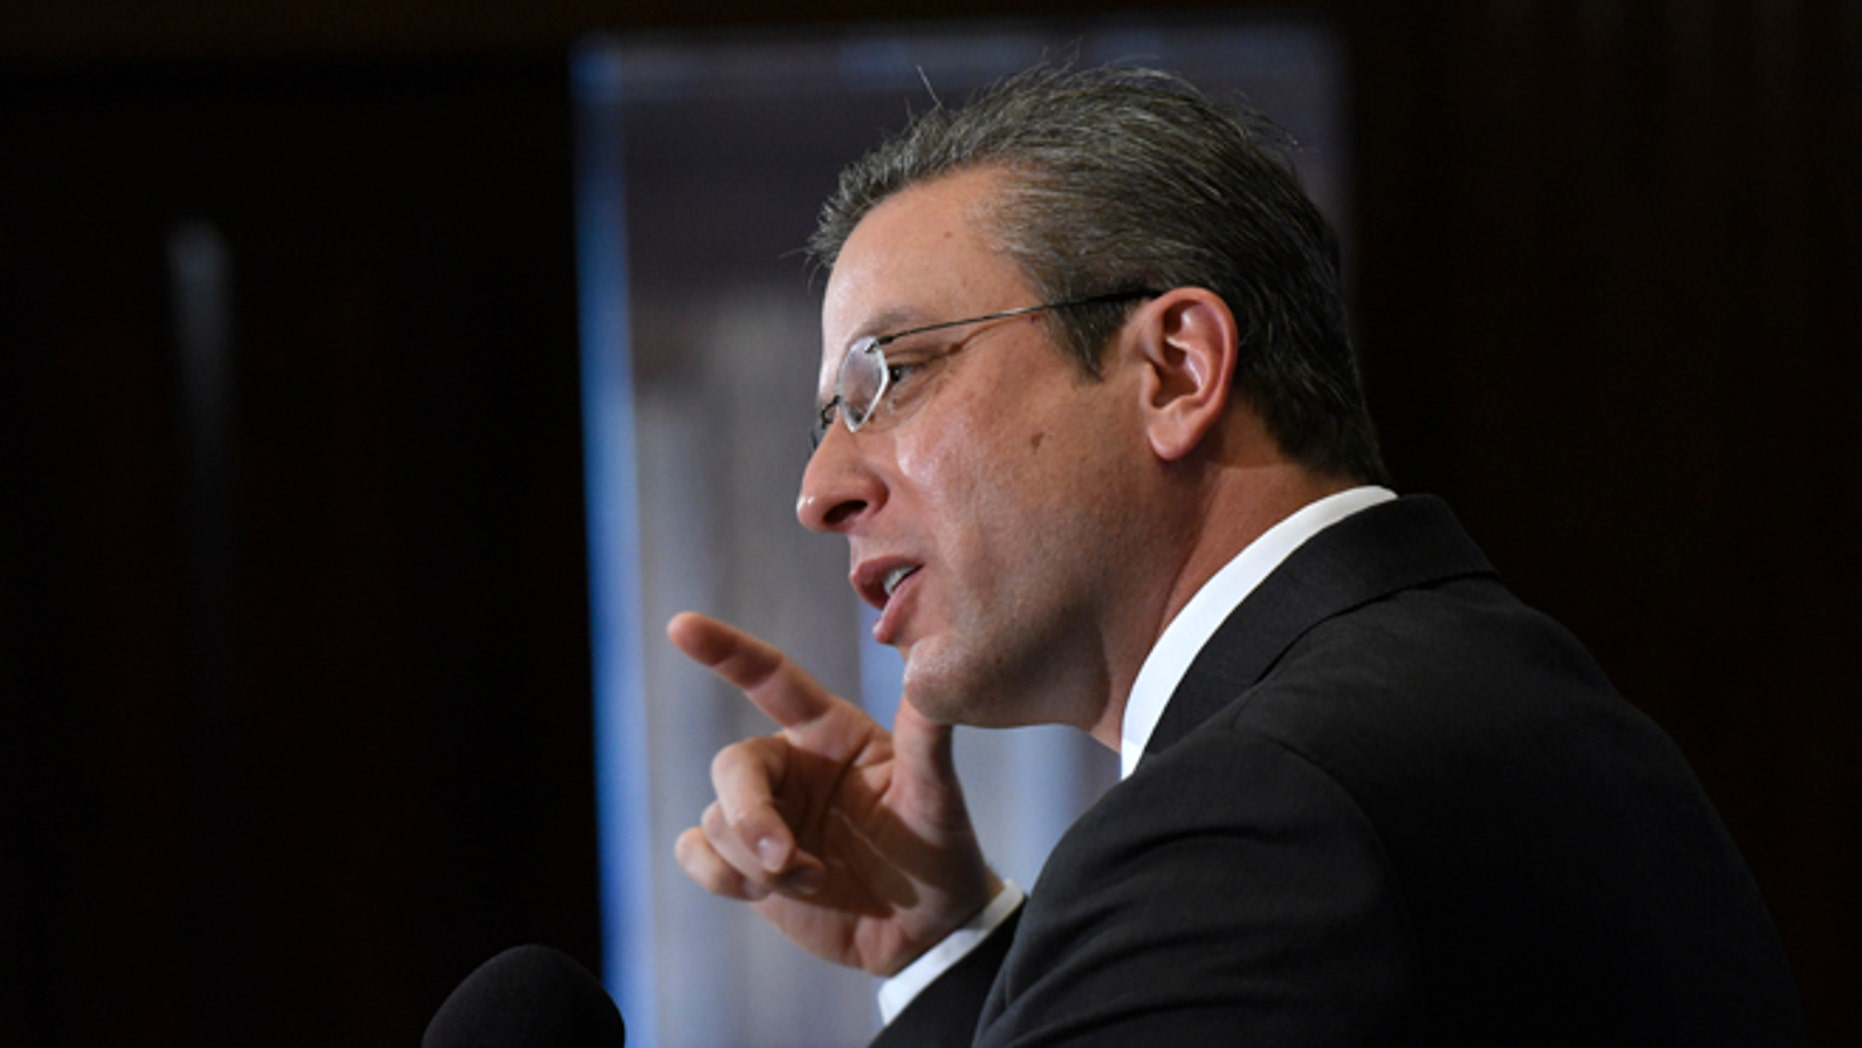 FILE - In this Dec. 16, 2015, file photo, Puerto Rico Gov. Alejandro Javier Garcia Padilla speaks at a luncheon at the National Press Club in Washington. Puerto Rico's governor unveiled a stark budget Monday, May 23, 2016, that sets aside more than $200 million for a critical bond payment as the U.S. territory sinks into a deep economic crisis.  (AP Photo/Sait Serkan Gurbuz,File)